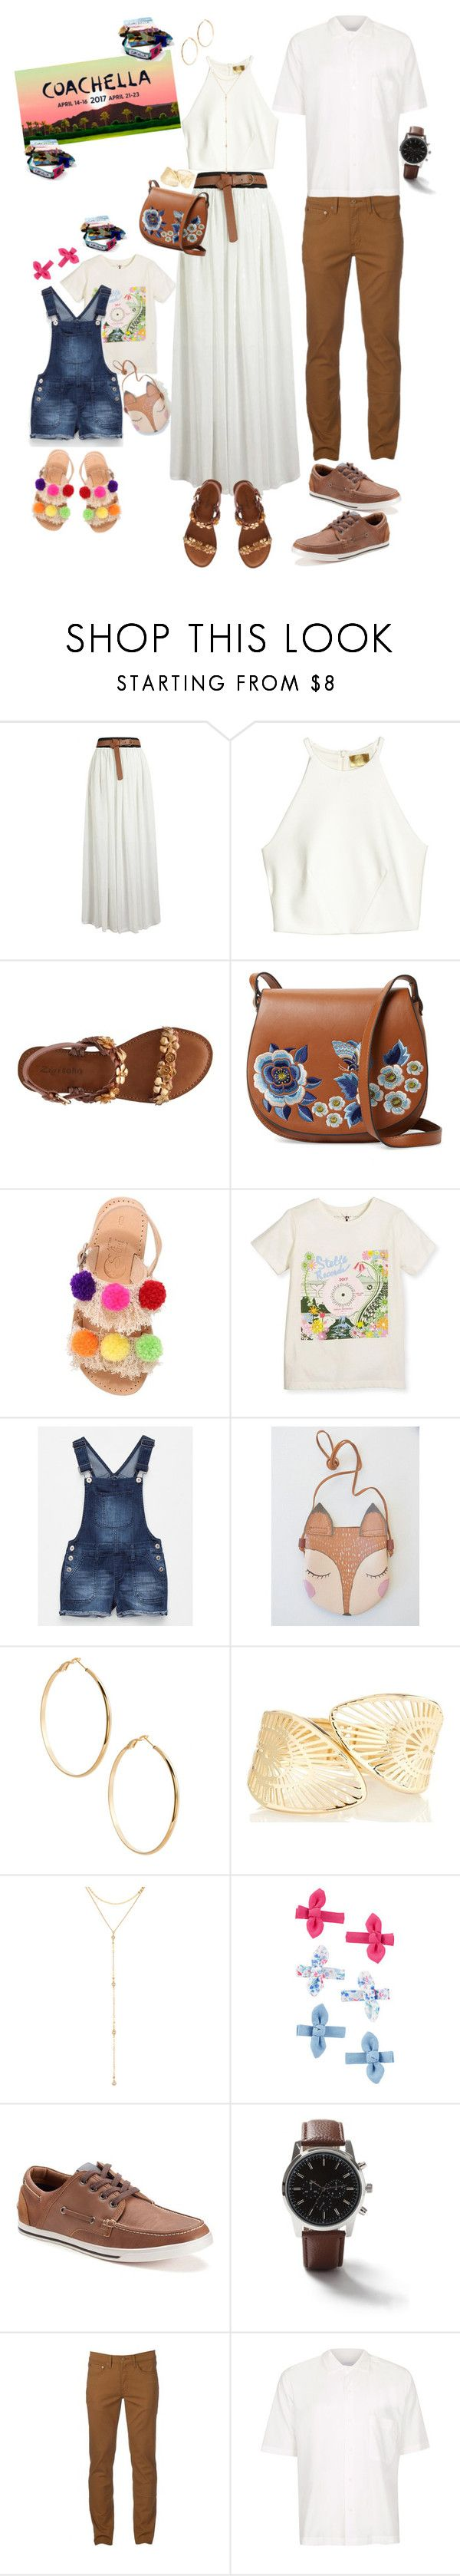 """Coachella Family"" by brunettediary ❤ liked on Polyvore featuring H&M, French Connection, Selini Action, Vanilla Star, GUESS by Marciano, Fragments, SONOMA Goods for Life, Topman, Urban Pipeline and coachella"